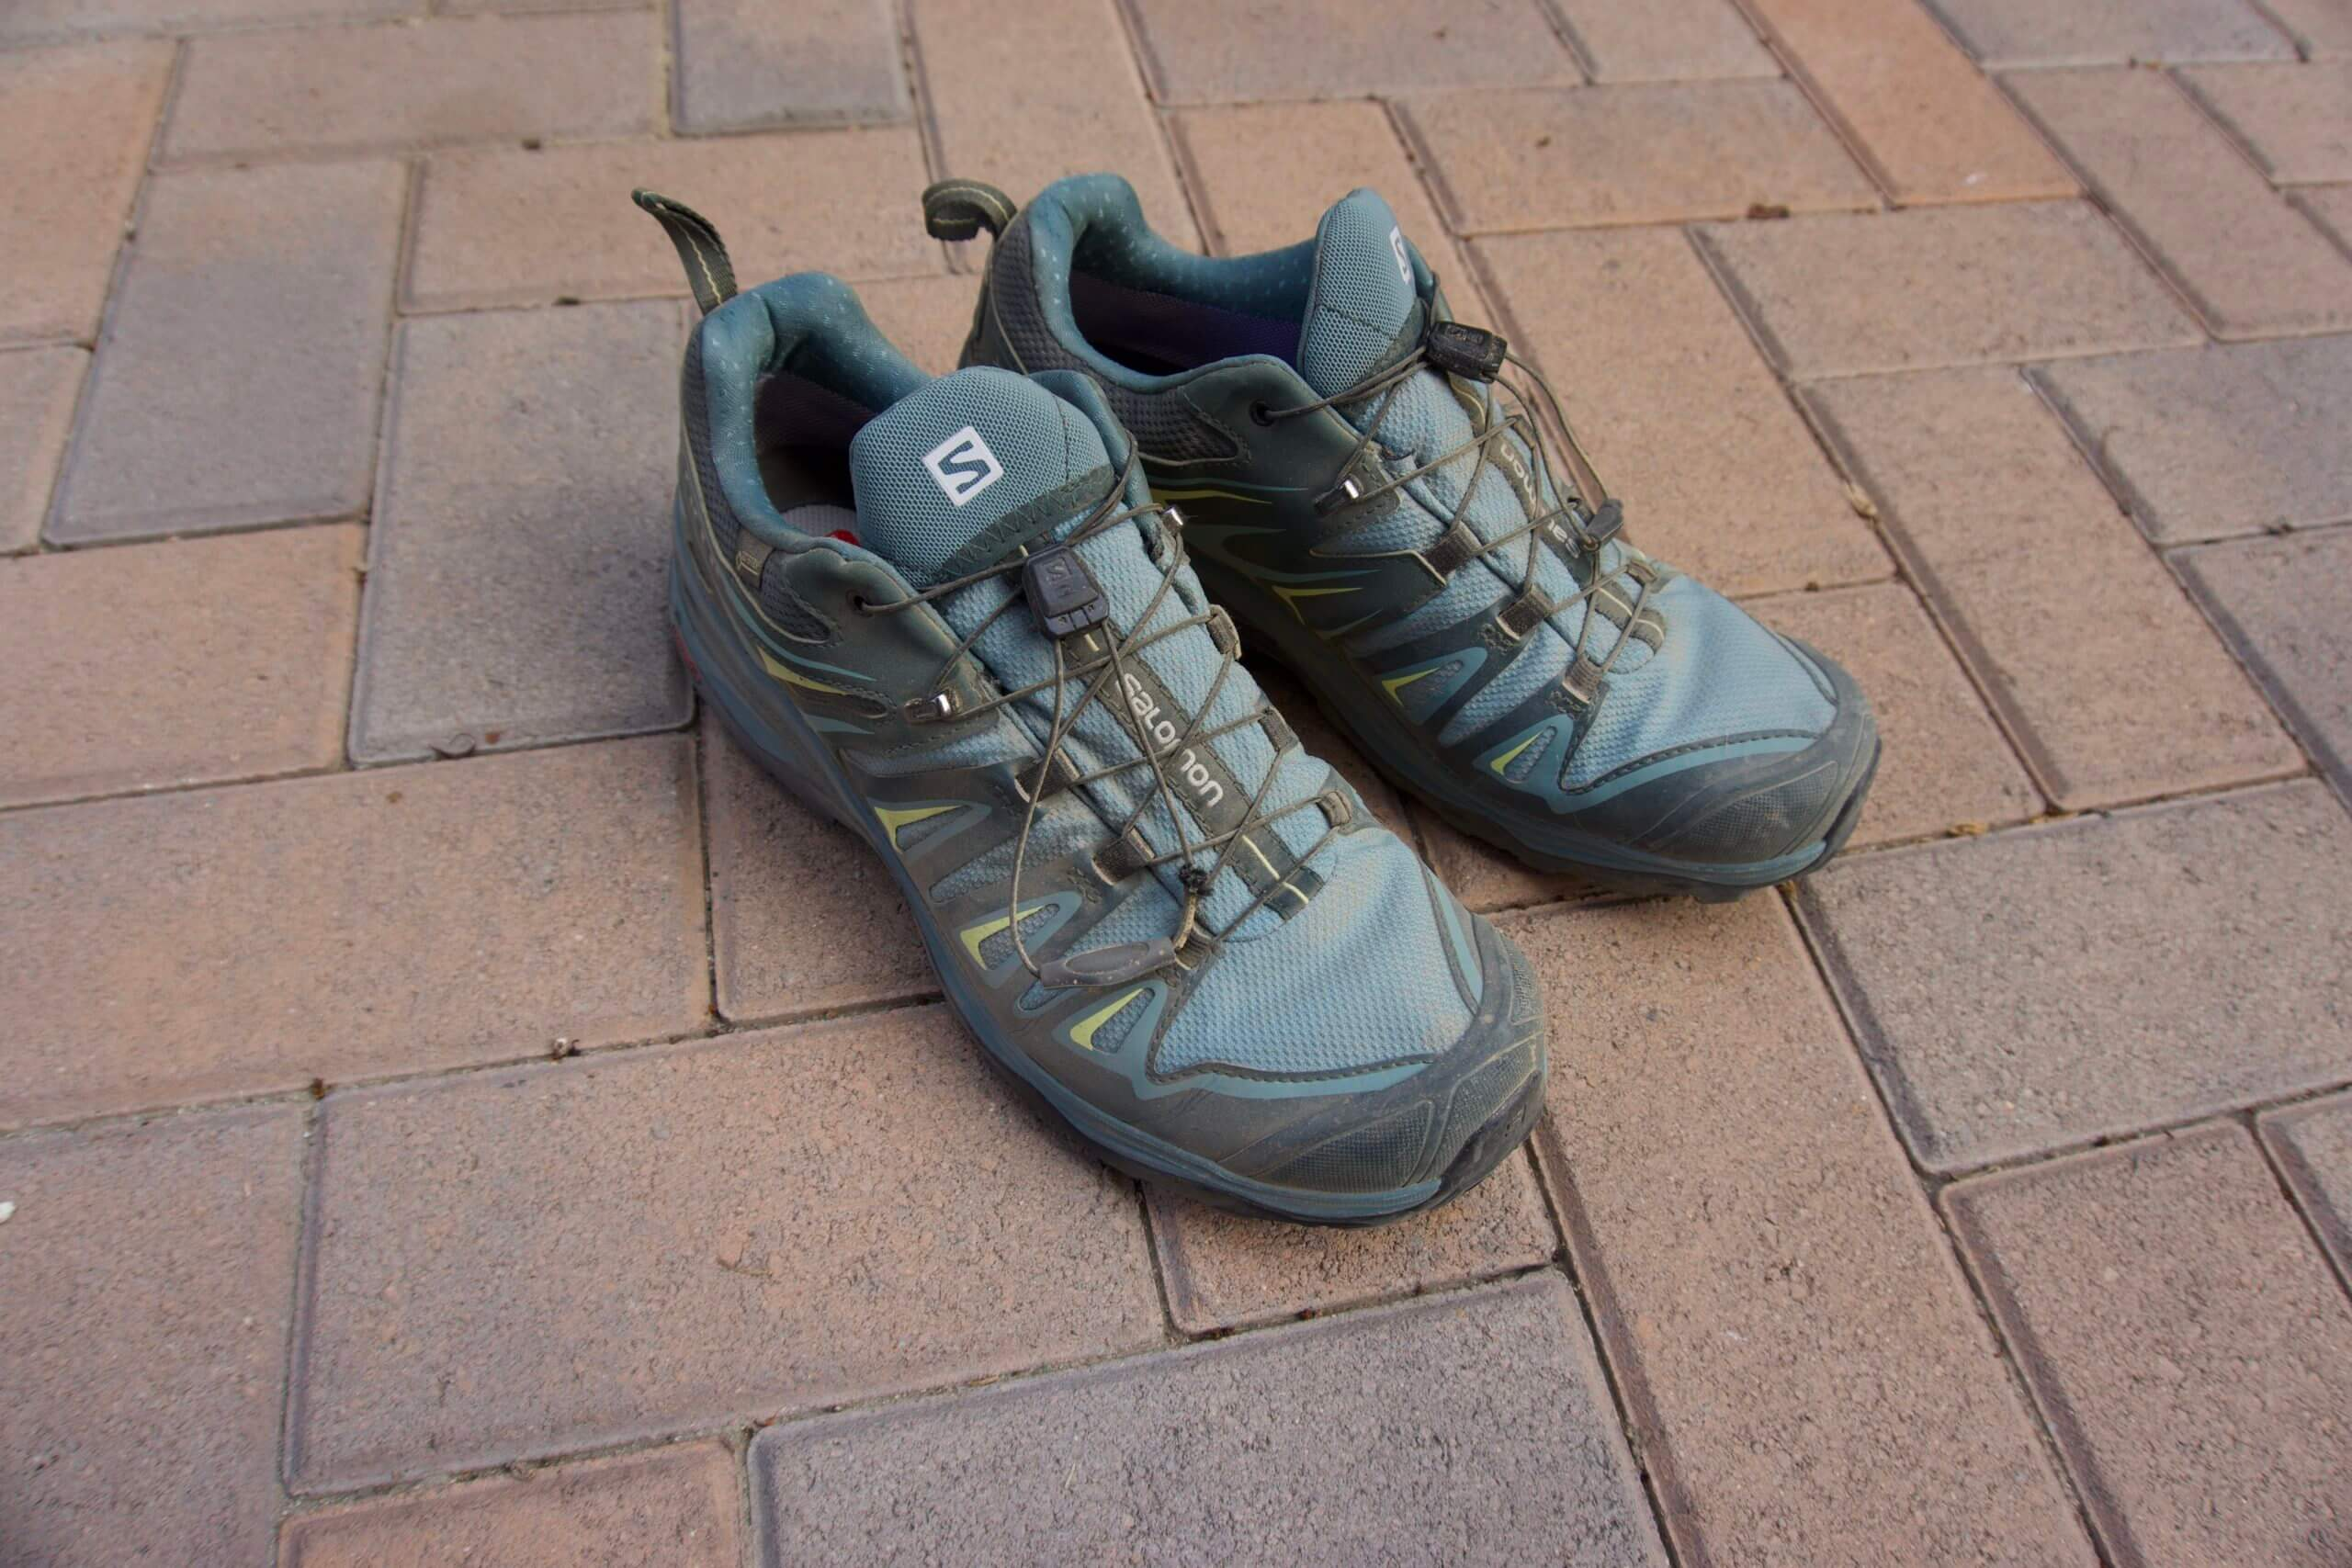 Wendy's hiking boots